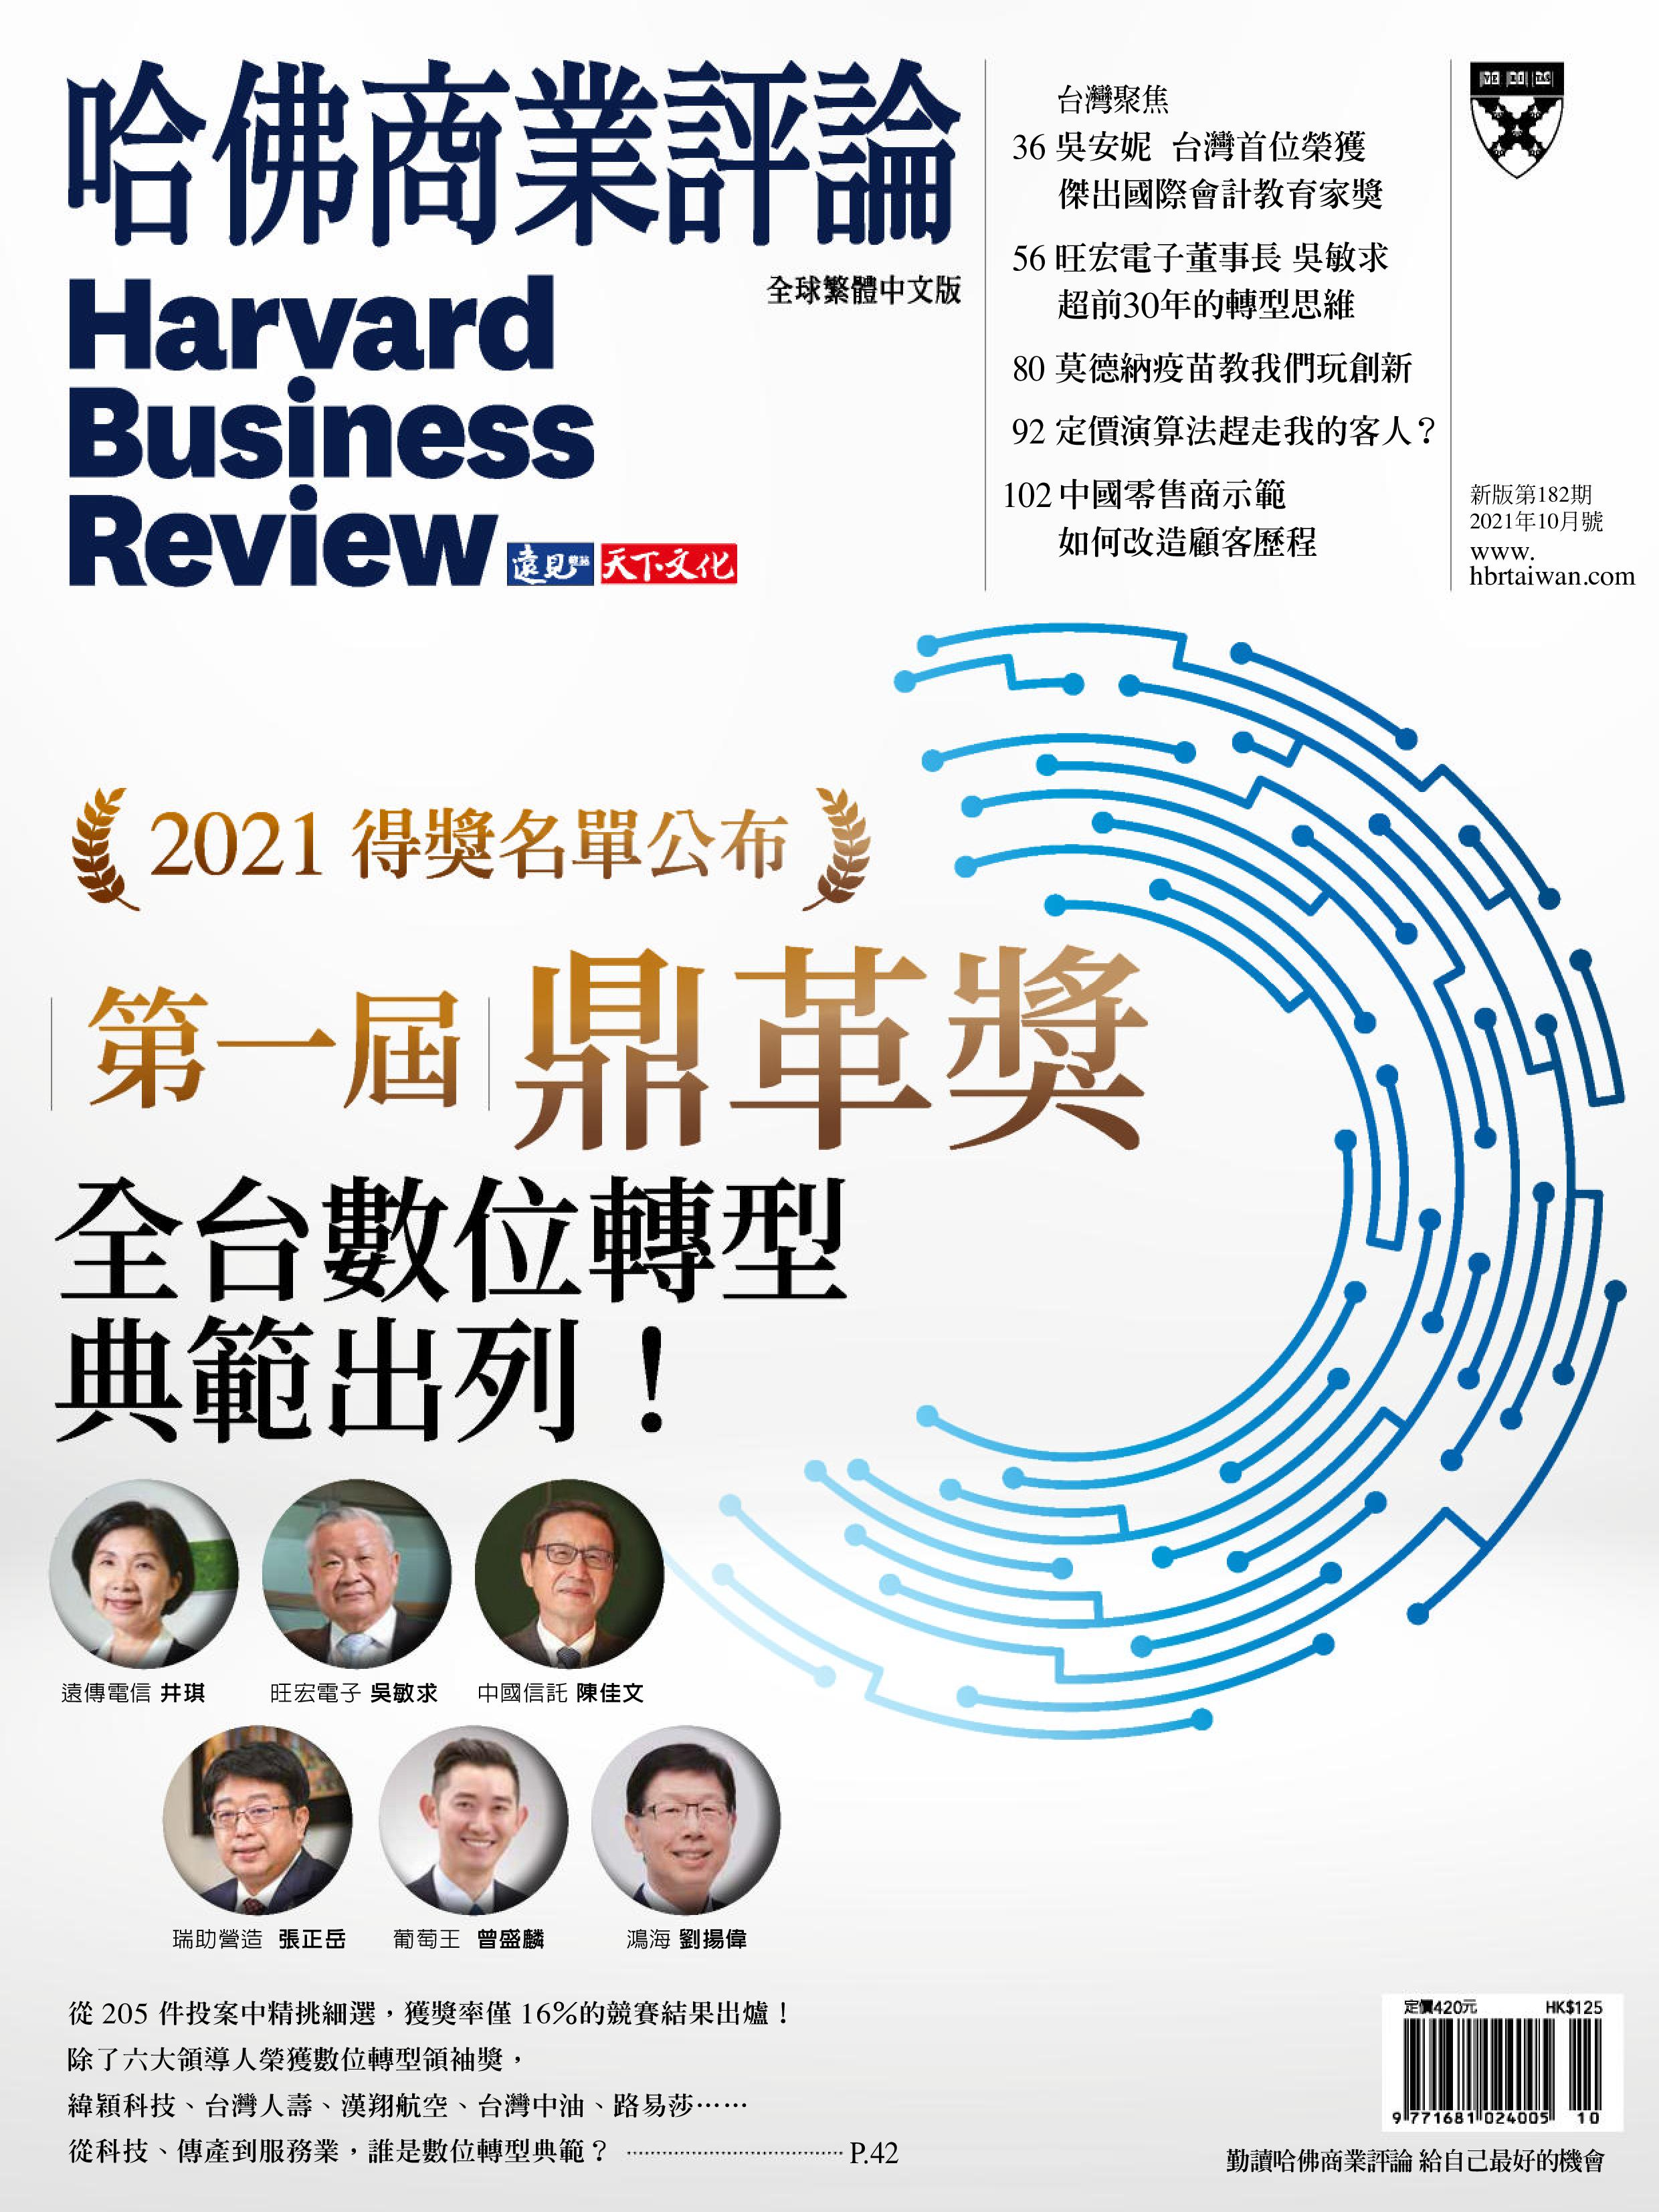 Harvard Business Review Complex Chinese Edition 哈佛商業評論 - 十月 2021